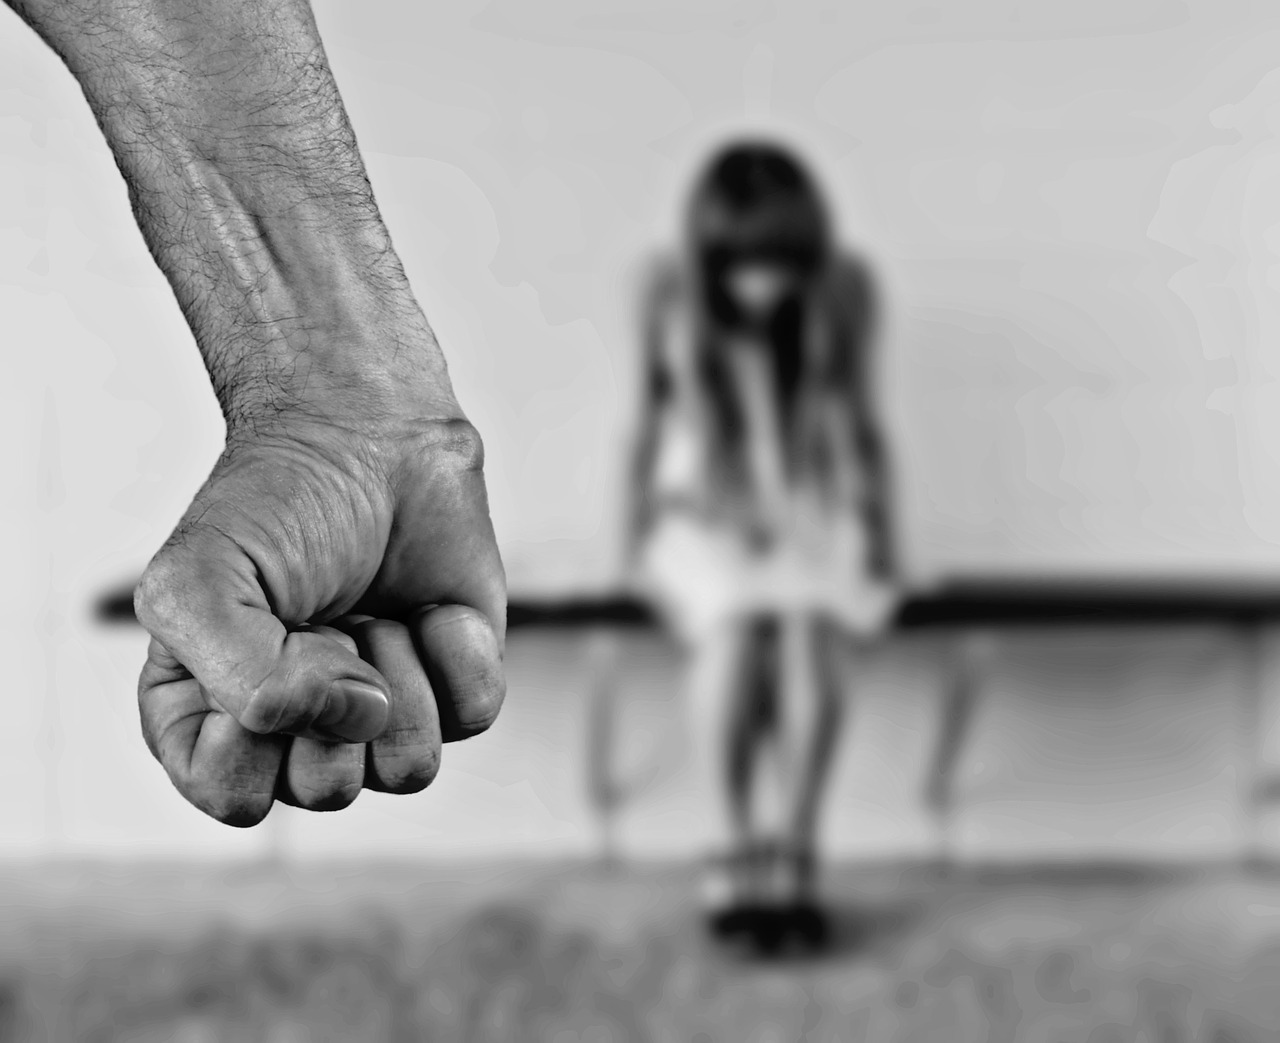 photo characterizing abuse - man's fist in foreground - woman bowing head in background